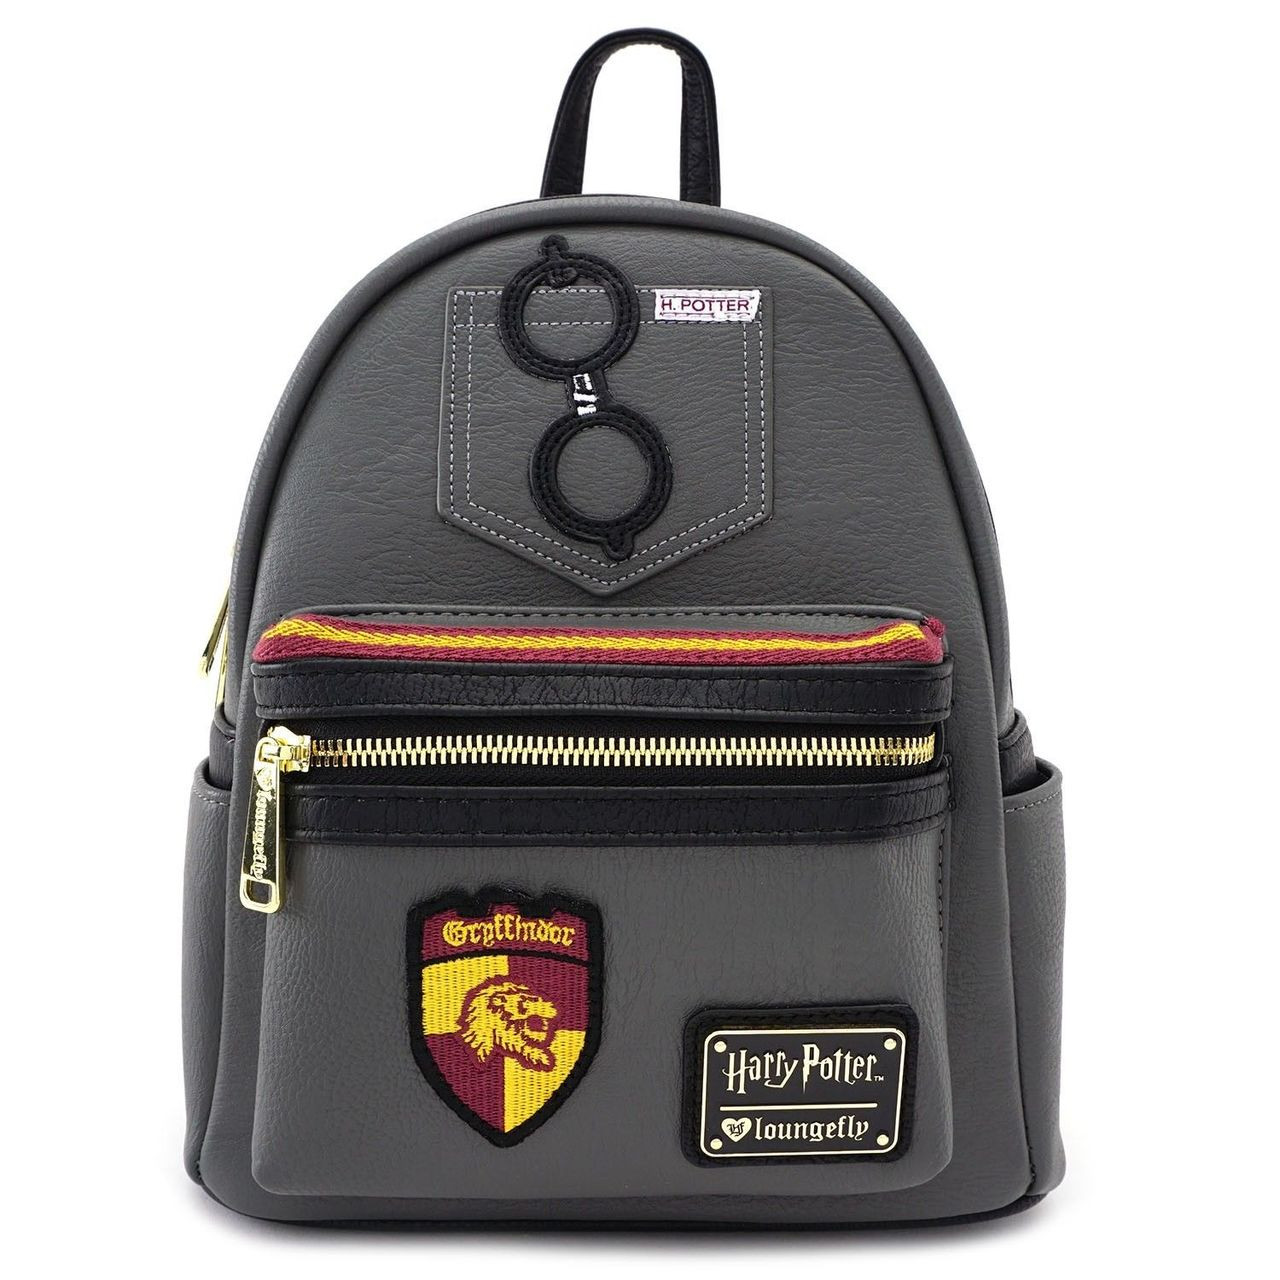 7c453e61f4f Loungefly Harry Potter Gryffindor Shield Faux Leather Mini Bag Backpack  HPBK0006 - Fearless Apparel